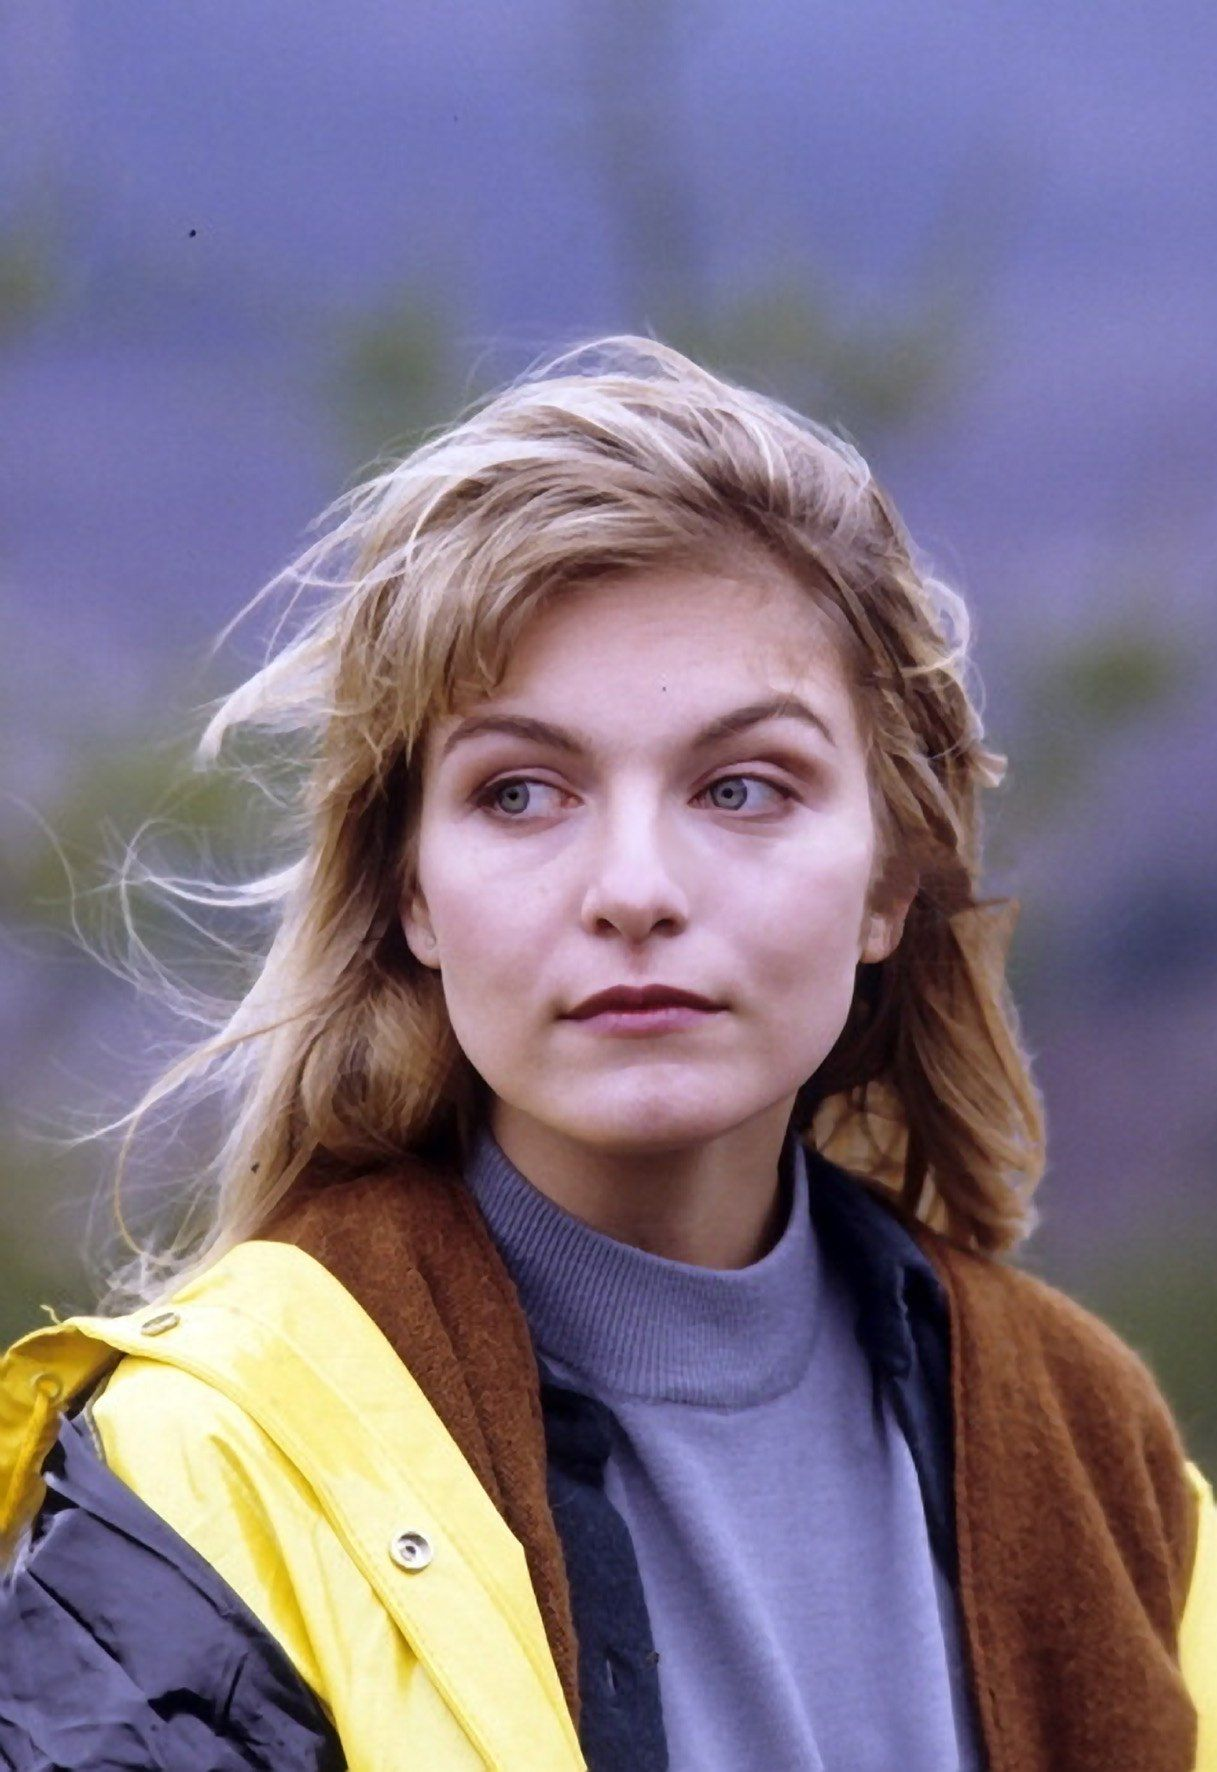 Laura Palmer (actress) Wallpapers For Android